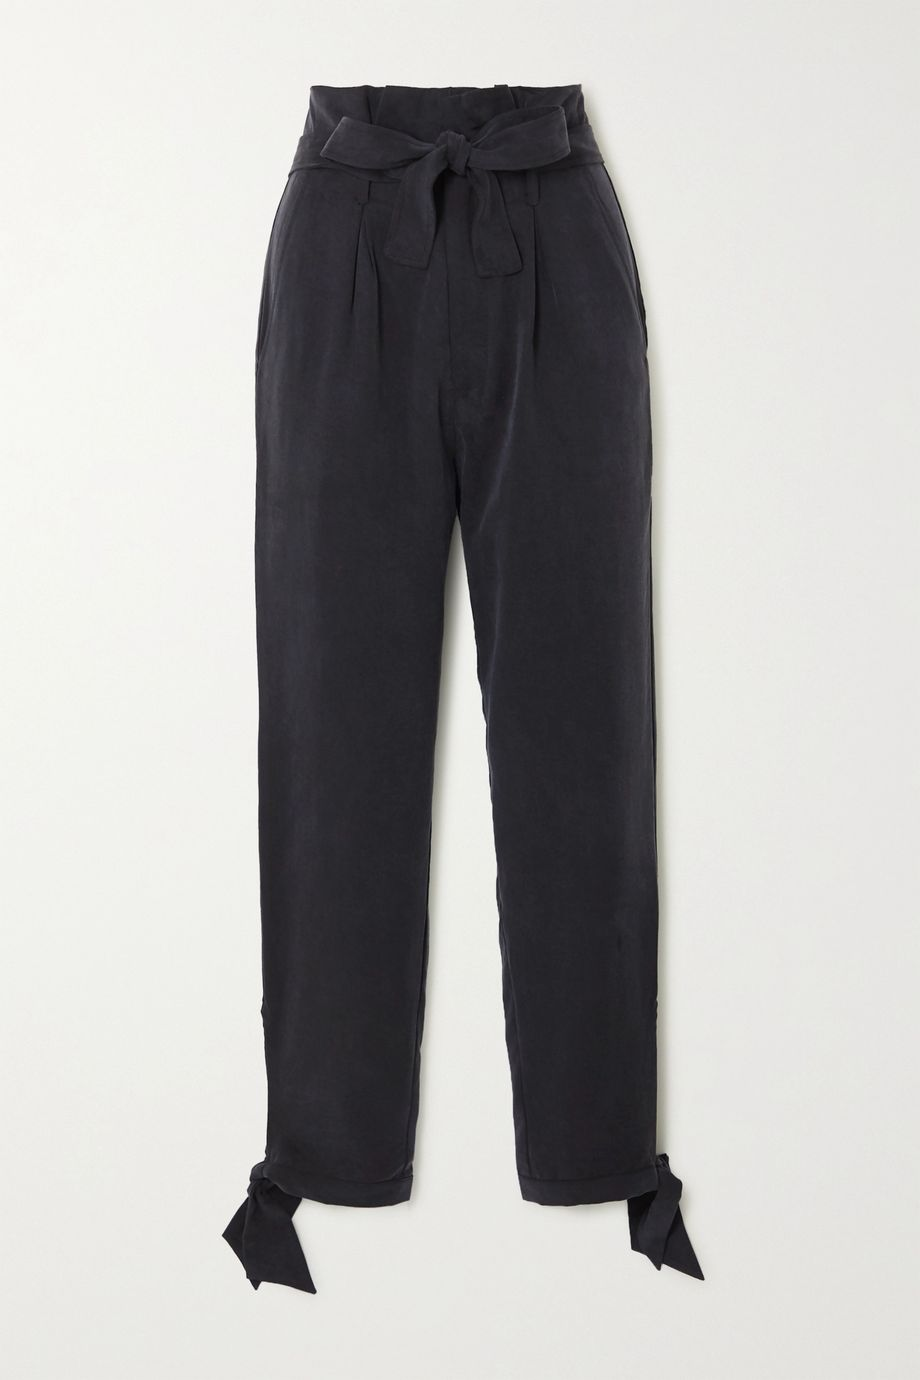 Reformation + NET SUSTAIN Avalon tie-detailed Tencel tapered pants